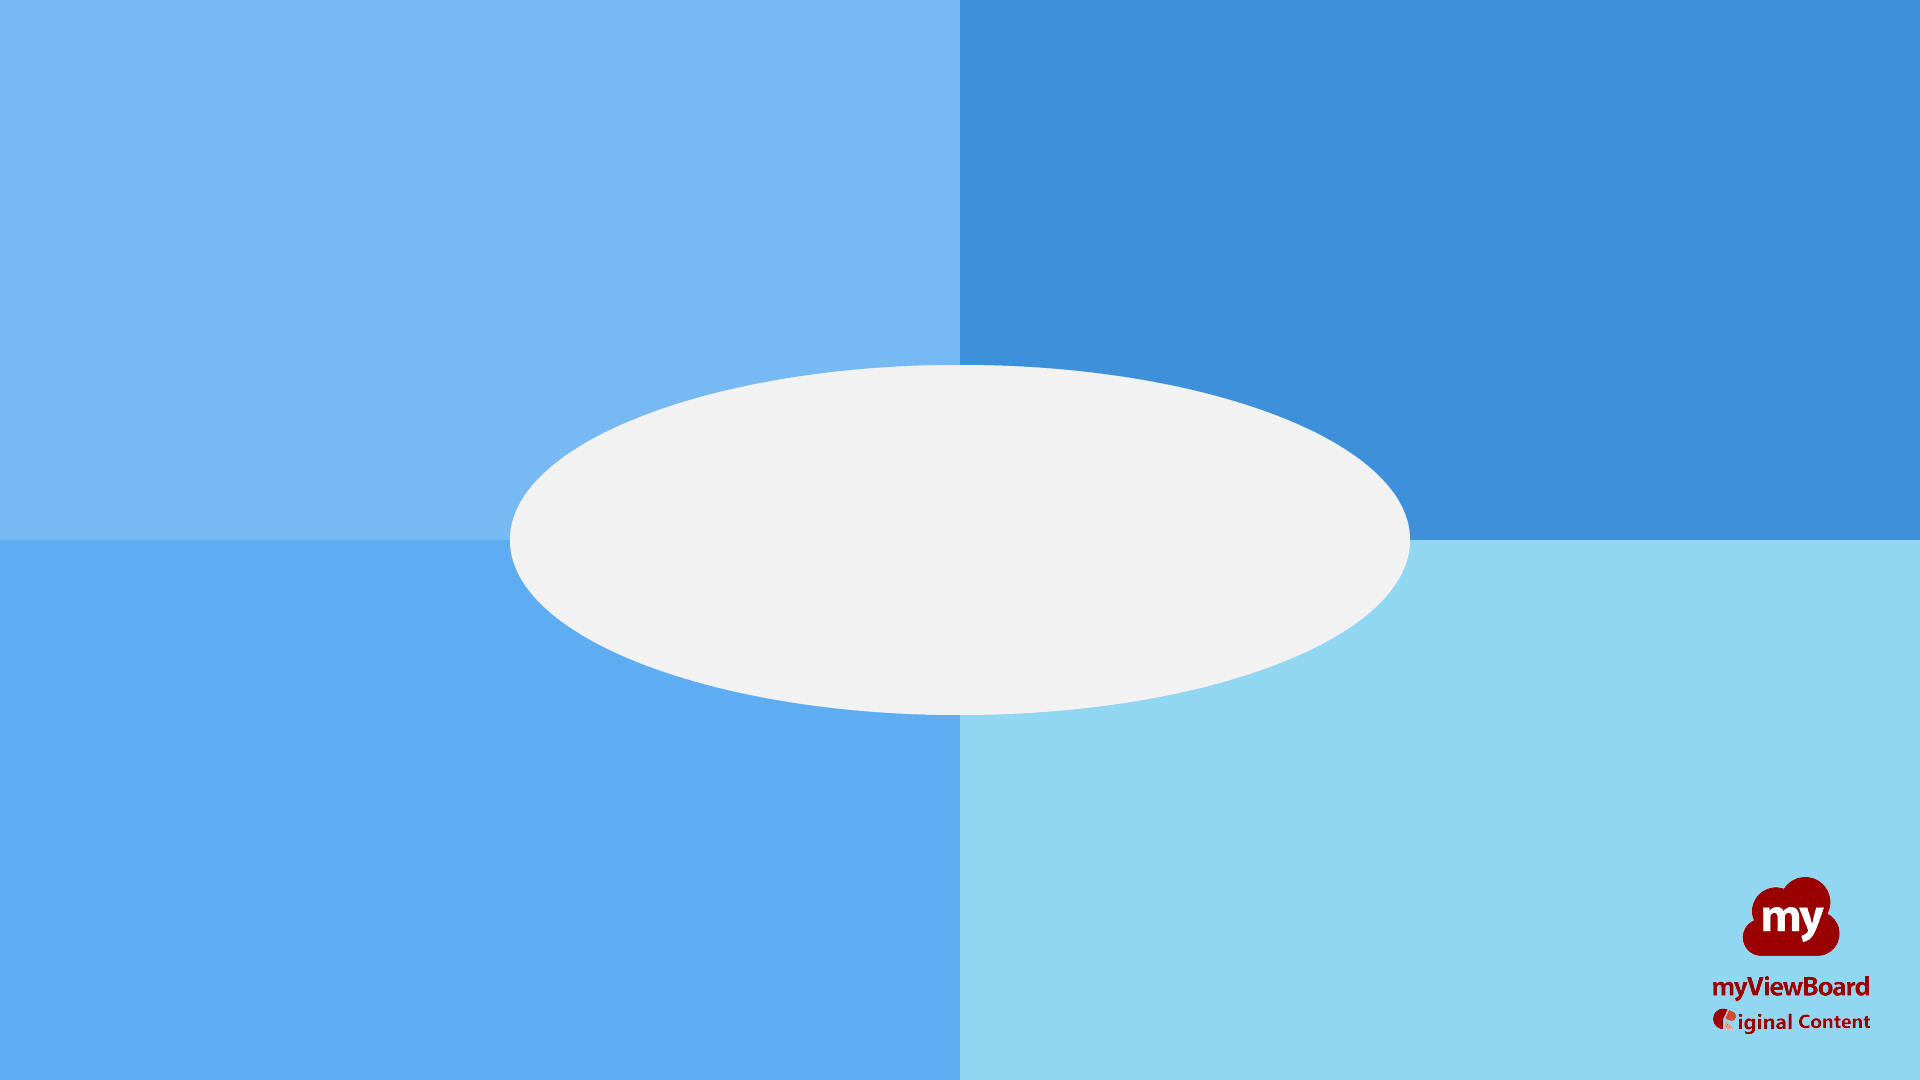 OCBnew thumbnail 4-square(logo) oval FHD.png